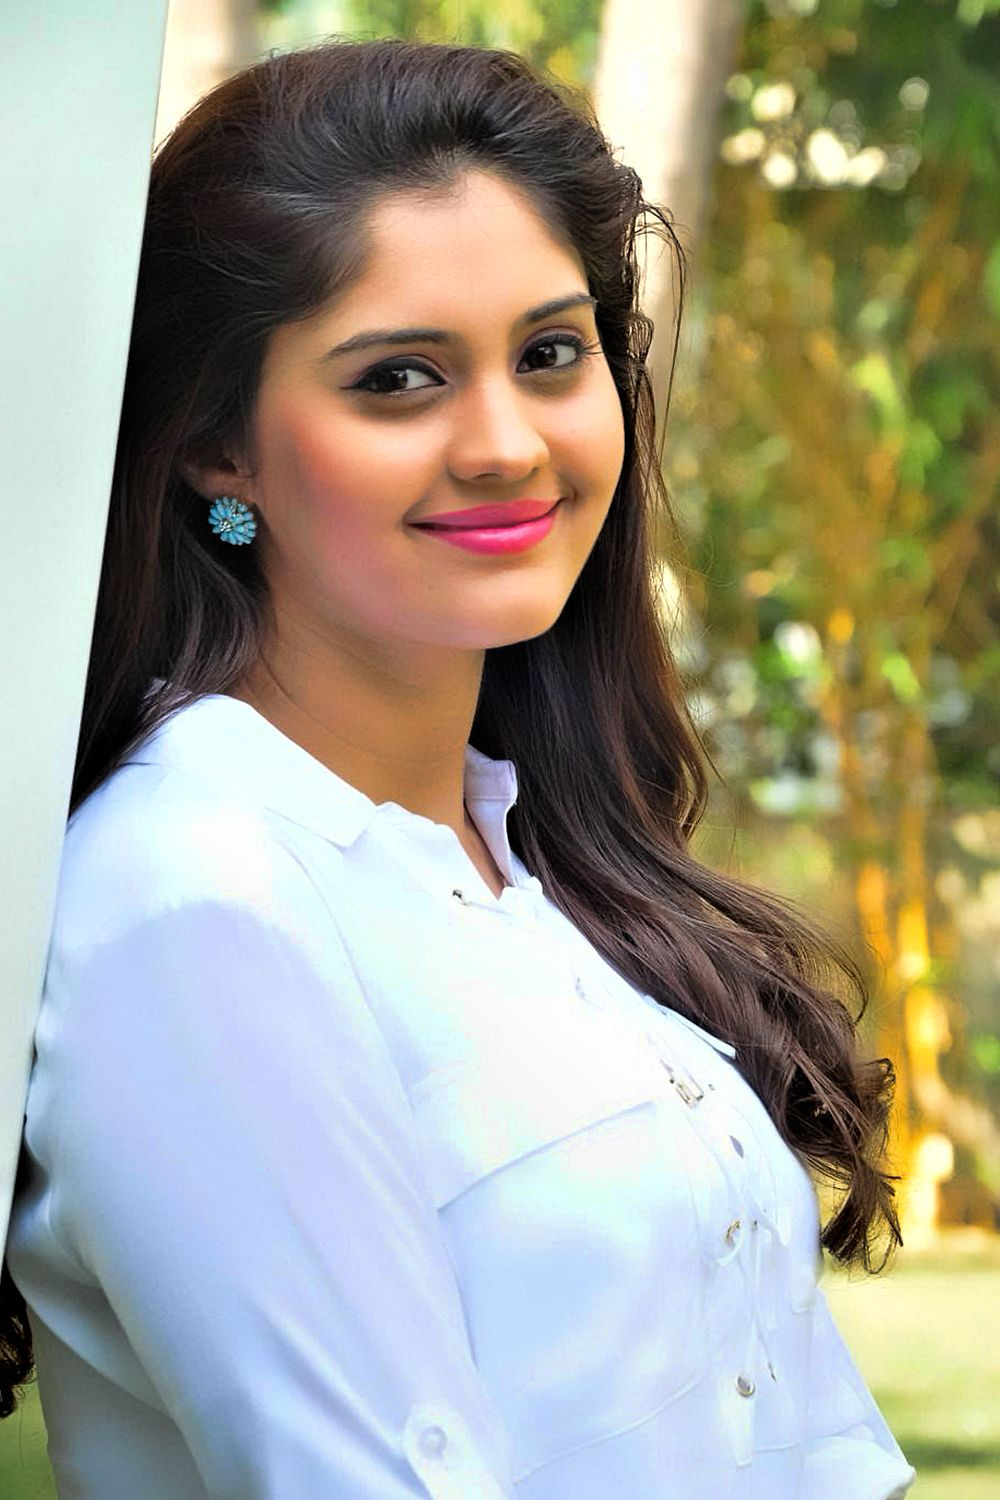 surabhi hd wallpapers ☆ desipixer ☆ | mobile wallpaper | pinterest